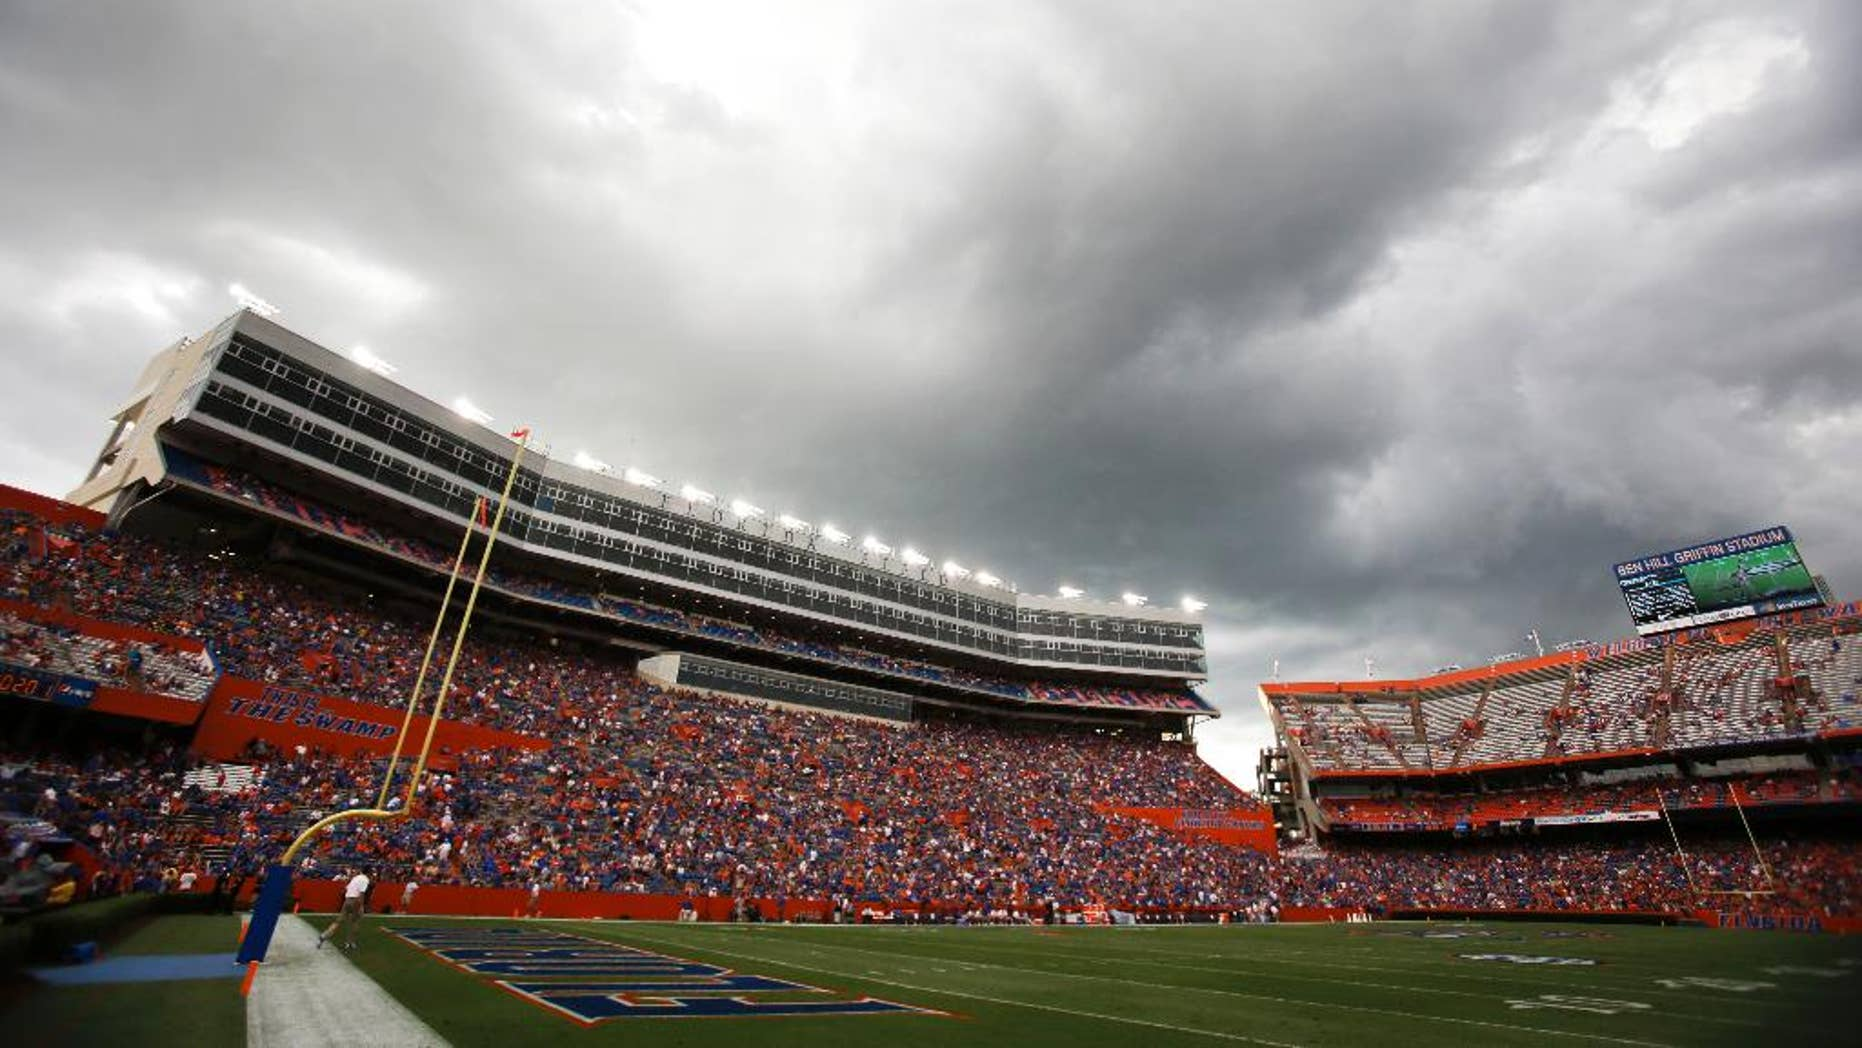 Dark clouds move over Ben Hill Griifin Stadium at Florida Field during a weather delay before the start of an NCAA college football game between Florida and Idaho in Gainesville, Fla., Saturday, Aug. 30, 2014. (AP Photo/John Raoux)